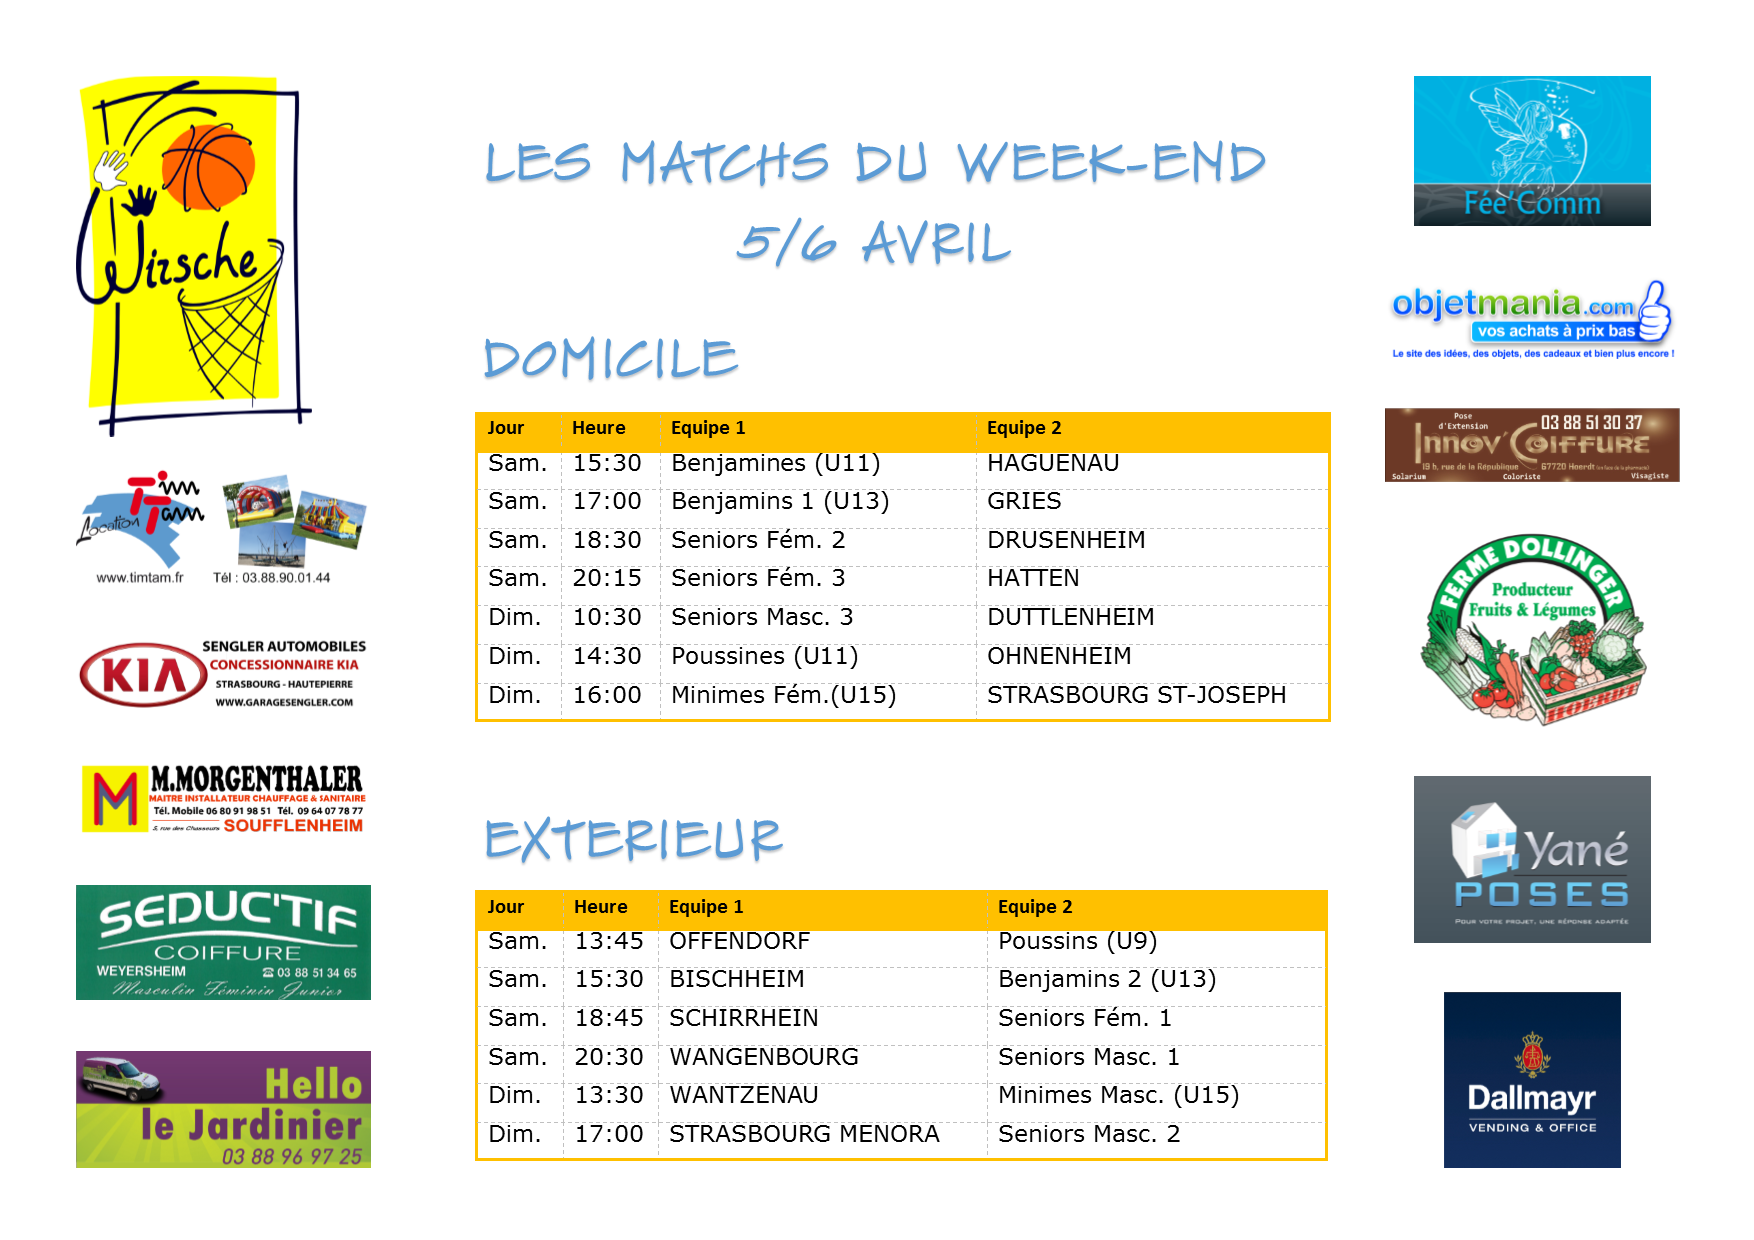 Matchs du week-end 5-6 avril